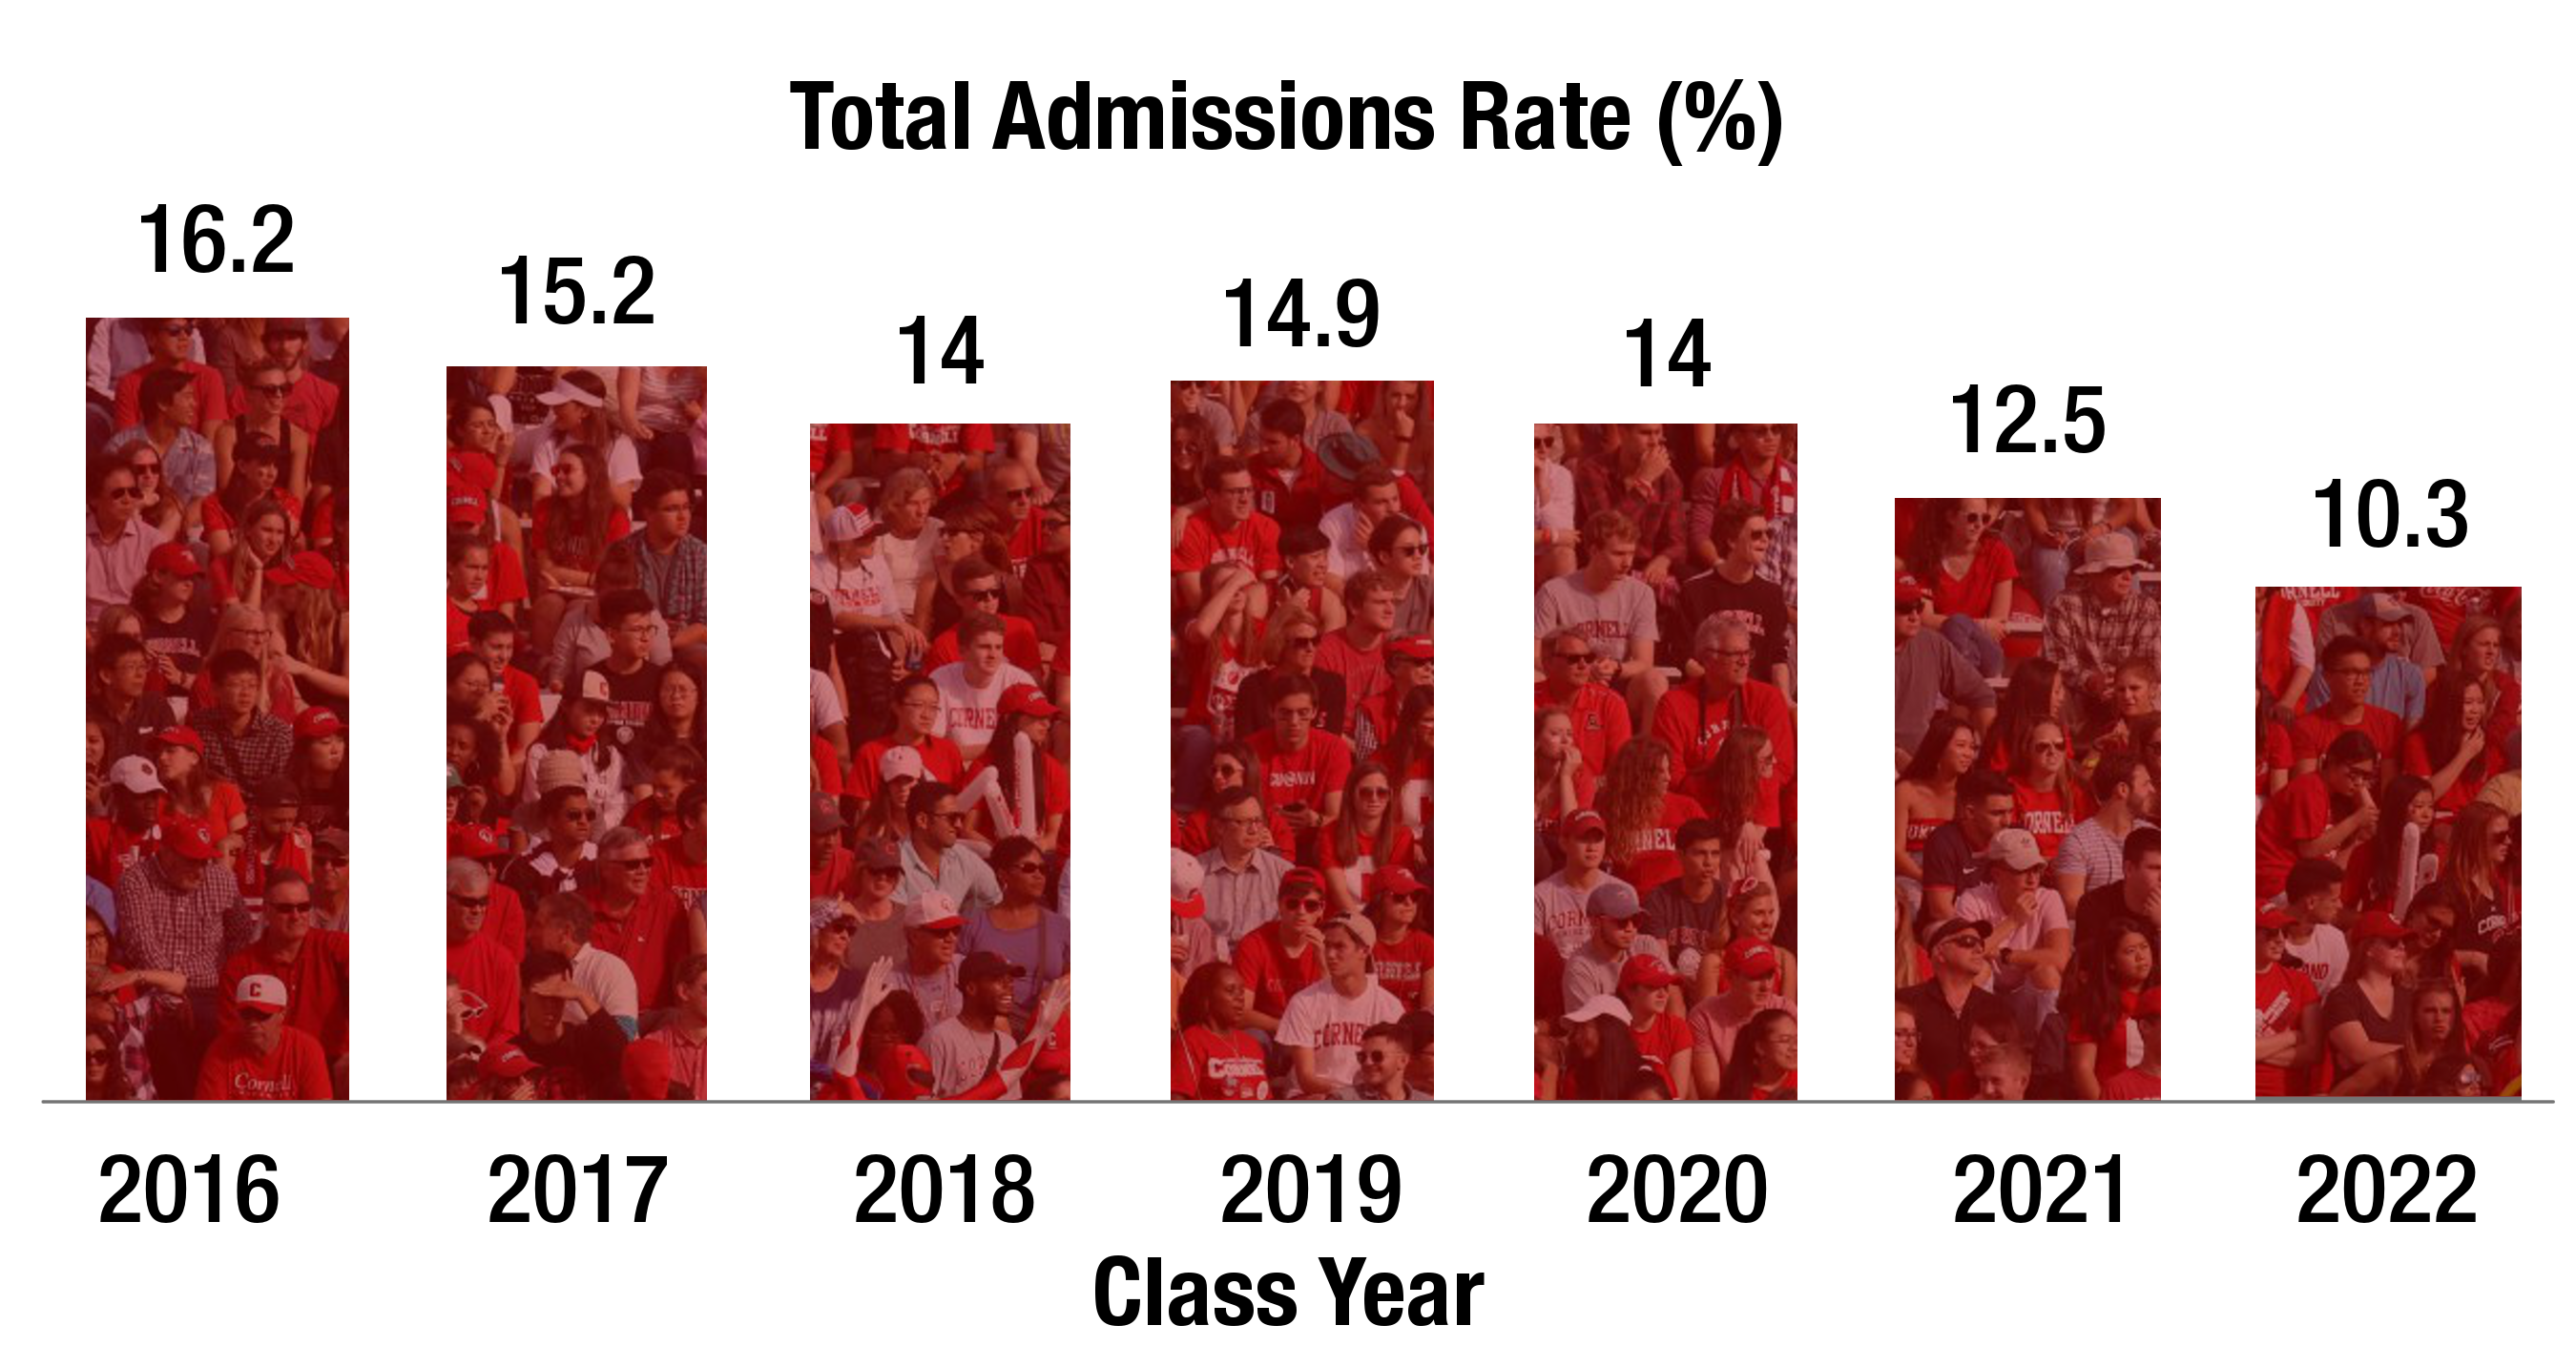 Cornell 2022 Calendar.Class Of 2022 Has Lowest Acceptance Rate Most Diverse In School History The Cornell Daily Sun